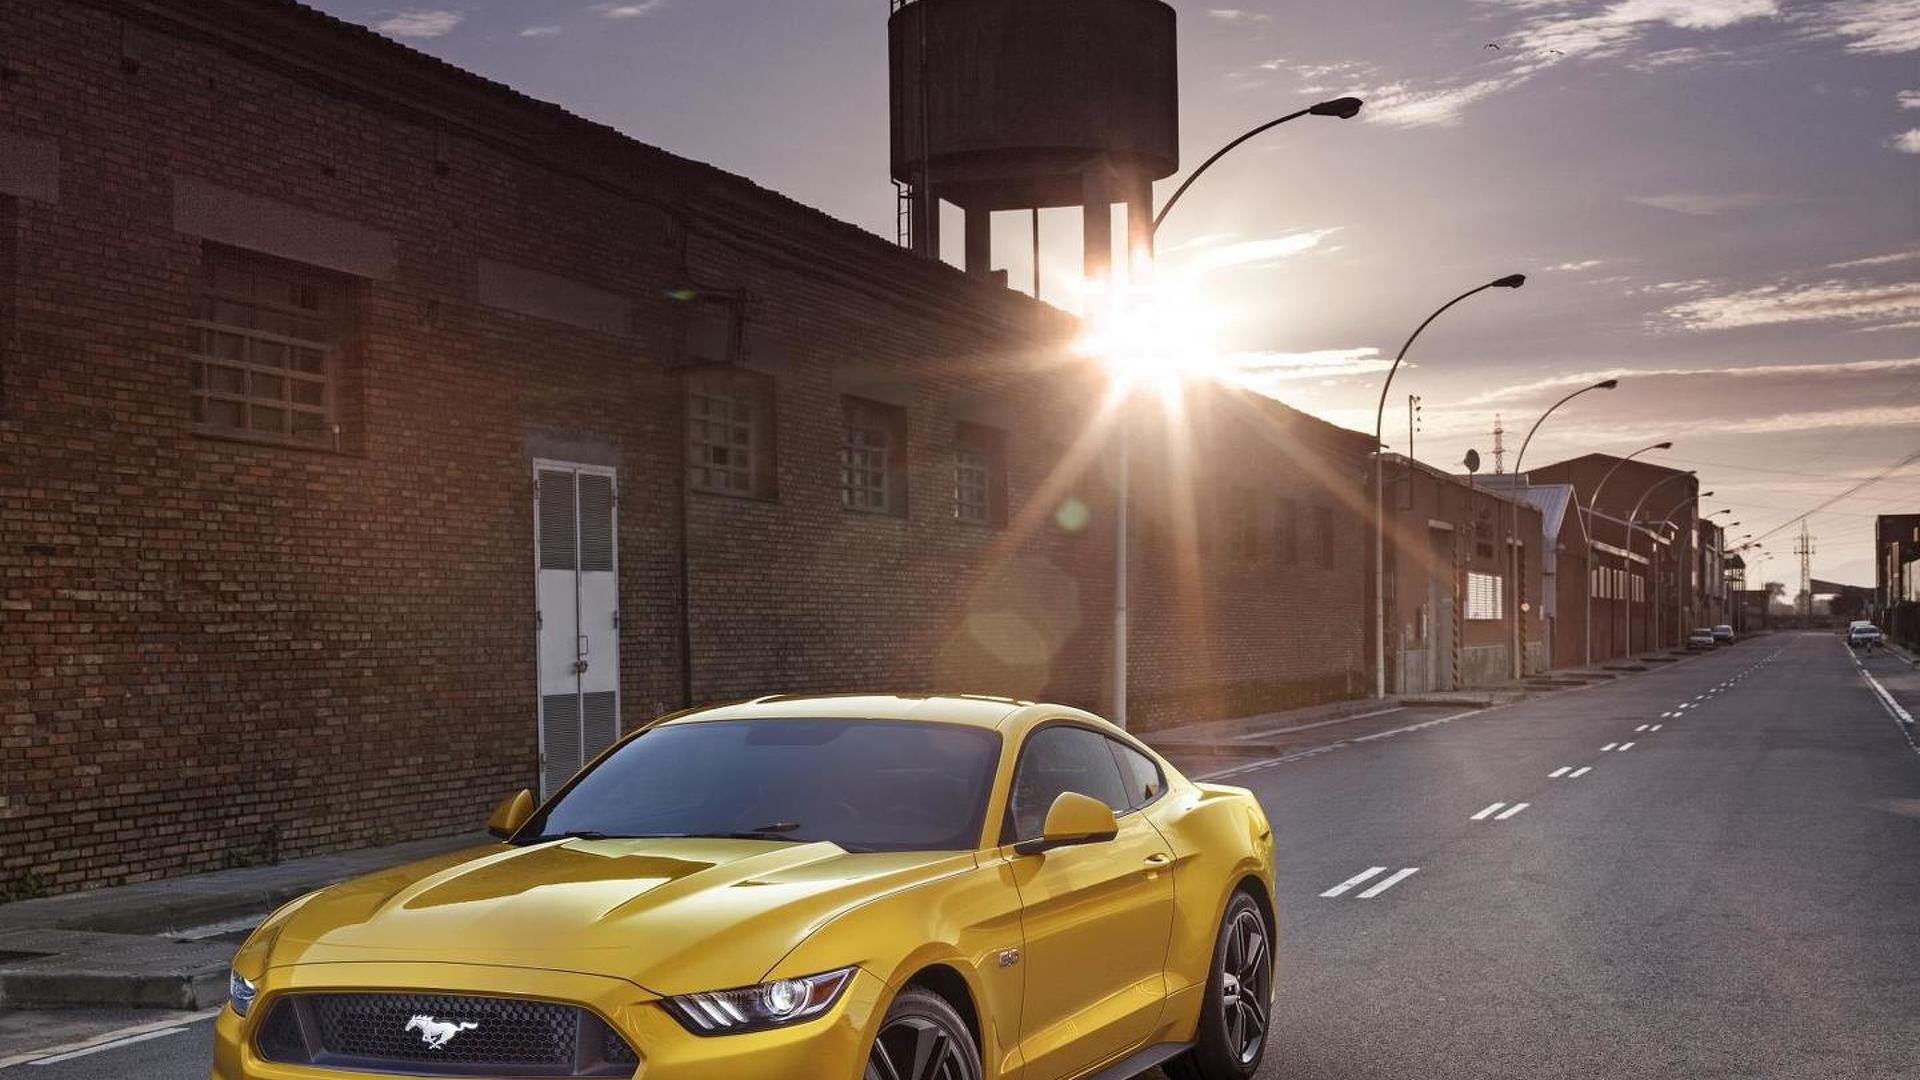 Half a million customers configured their EU-spec Ford Mustangs online in only a month